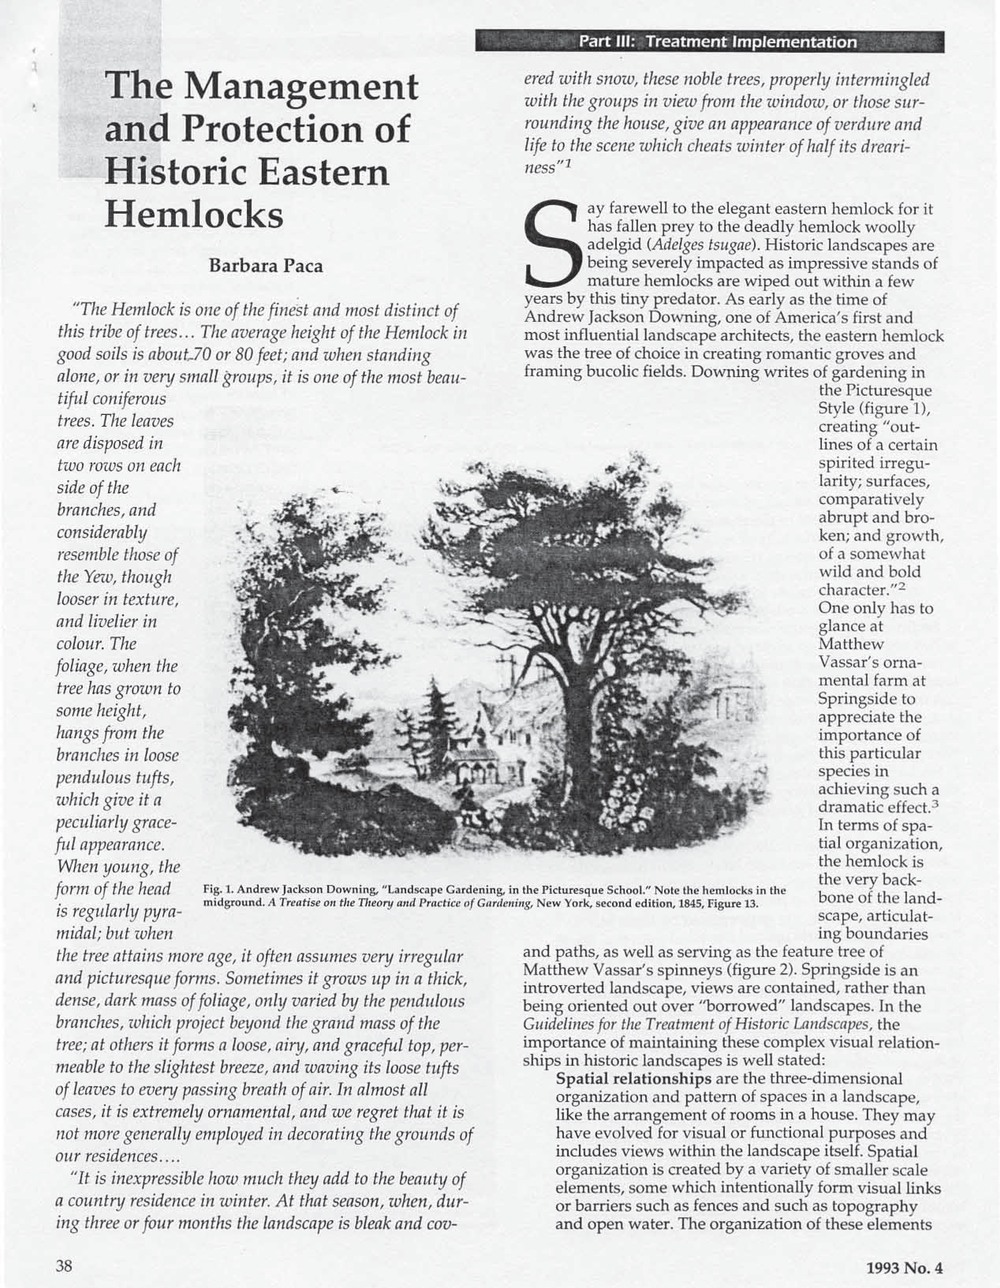 """Management and Protection of Historic Eastern Hemlocks"" in CRM, National Park Service, Vol. 16, No. 4, 1993."